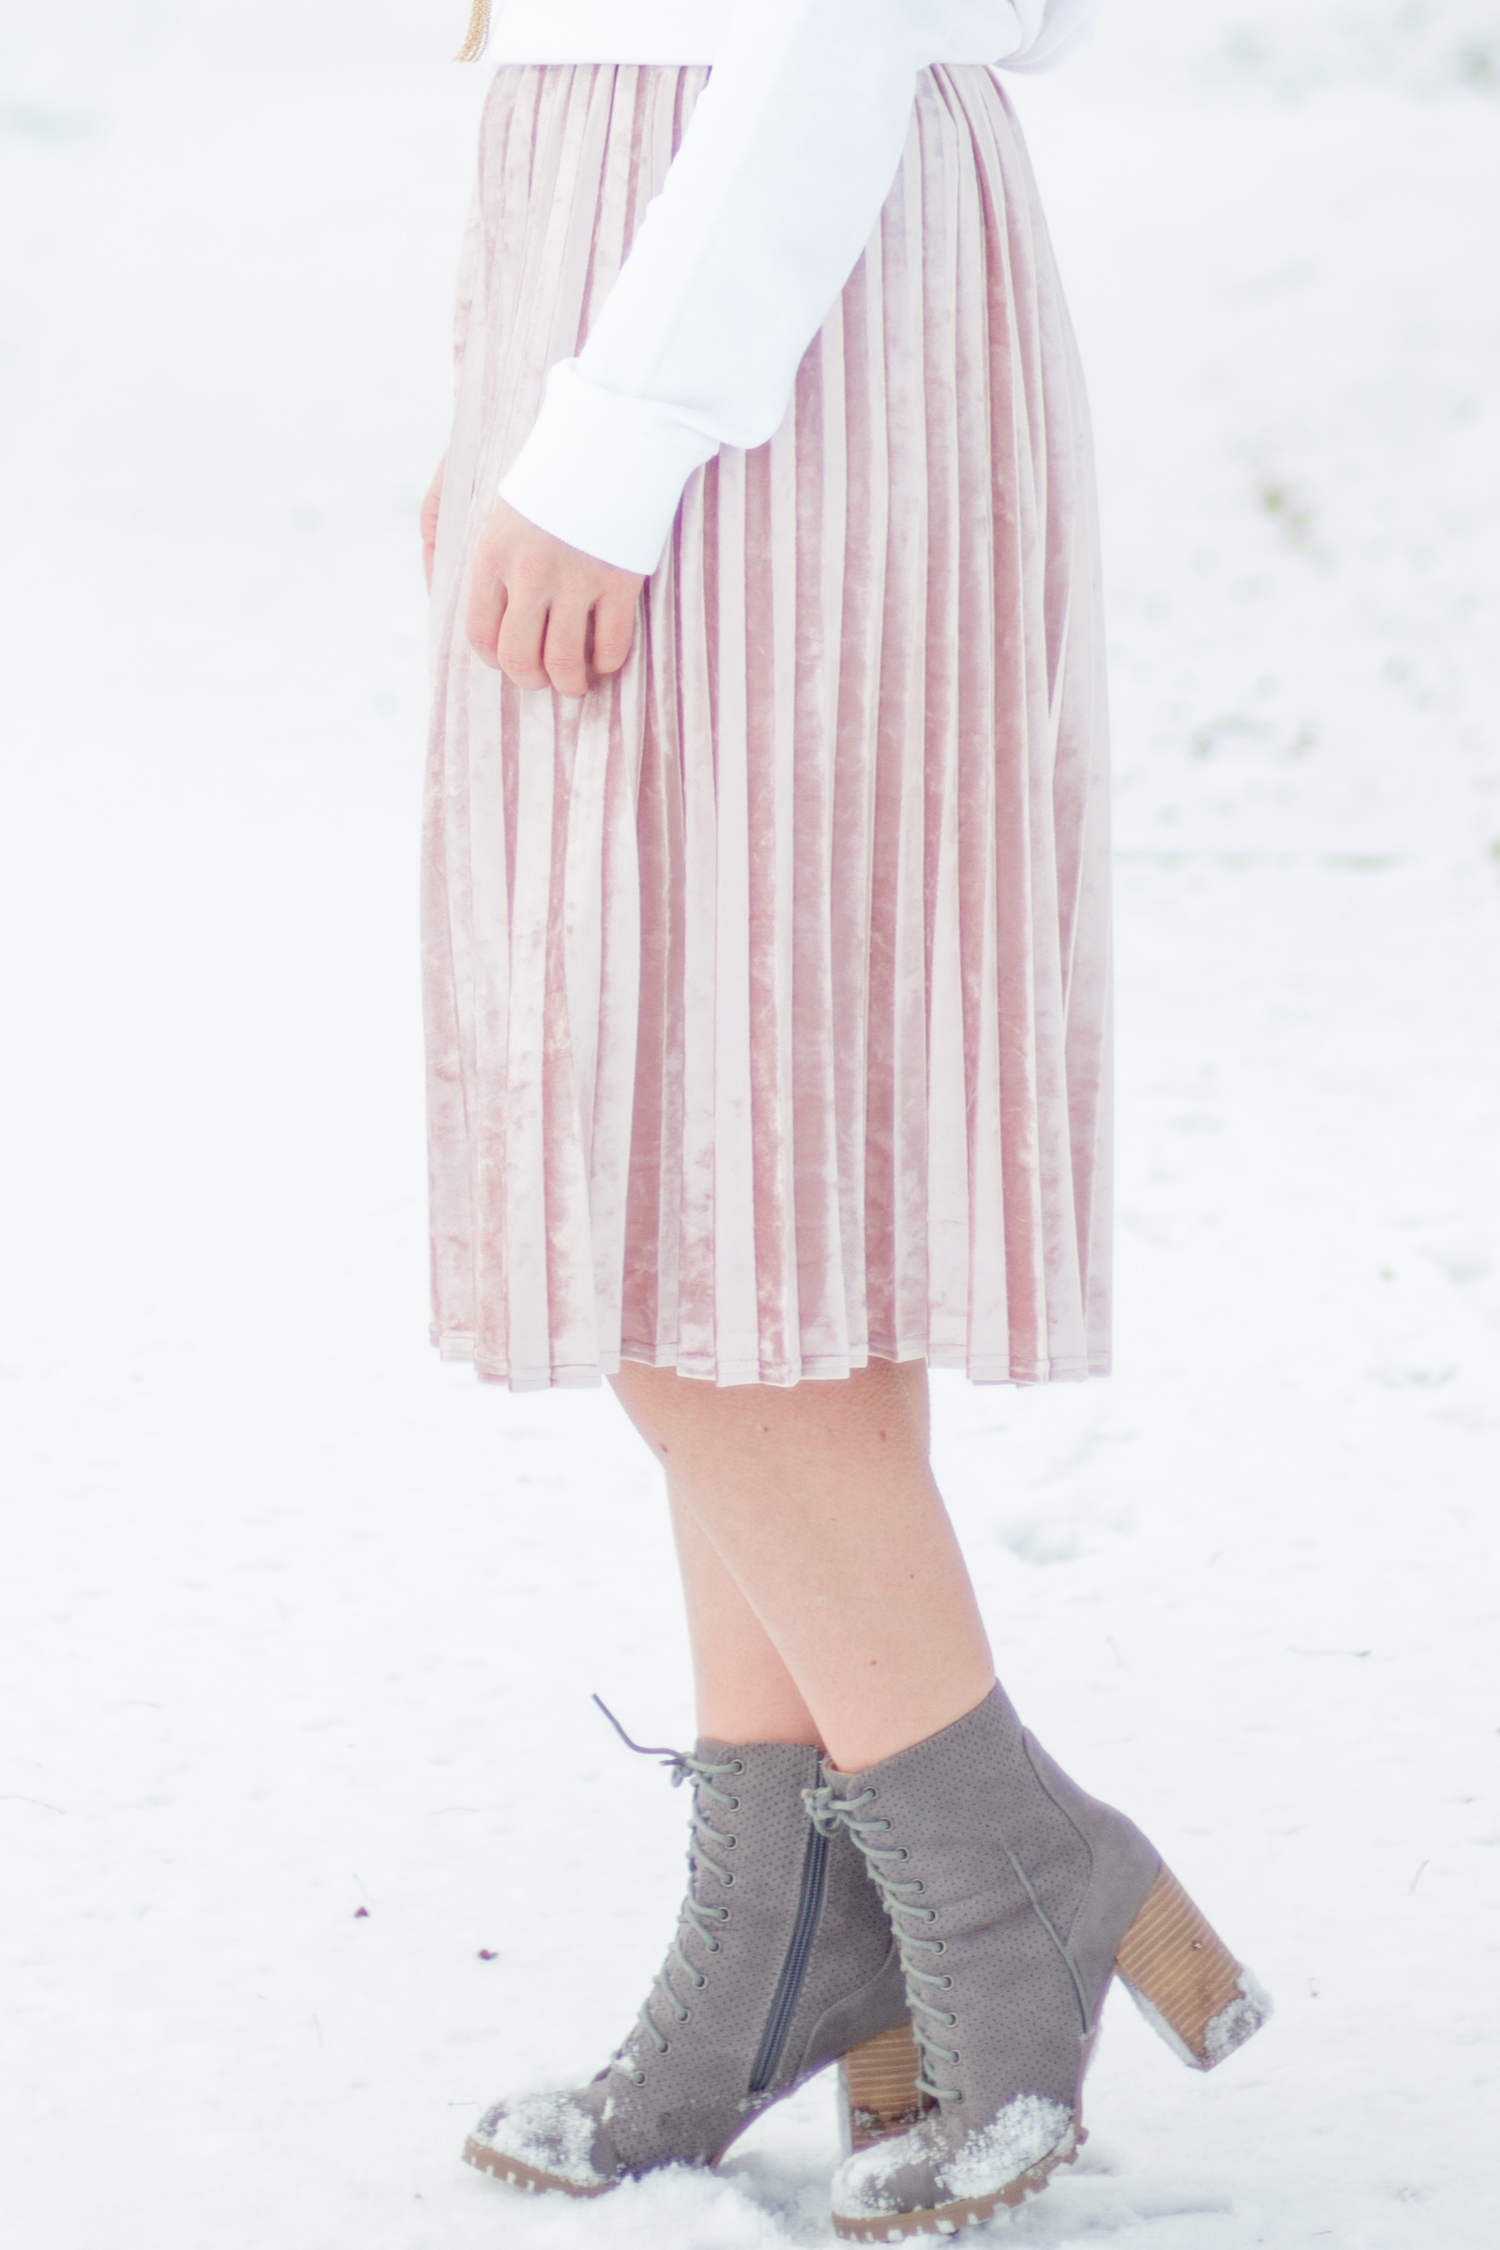 gray boots outfit.jpg